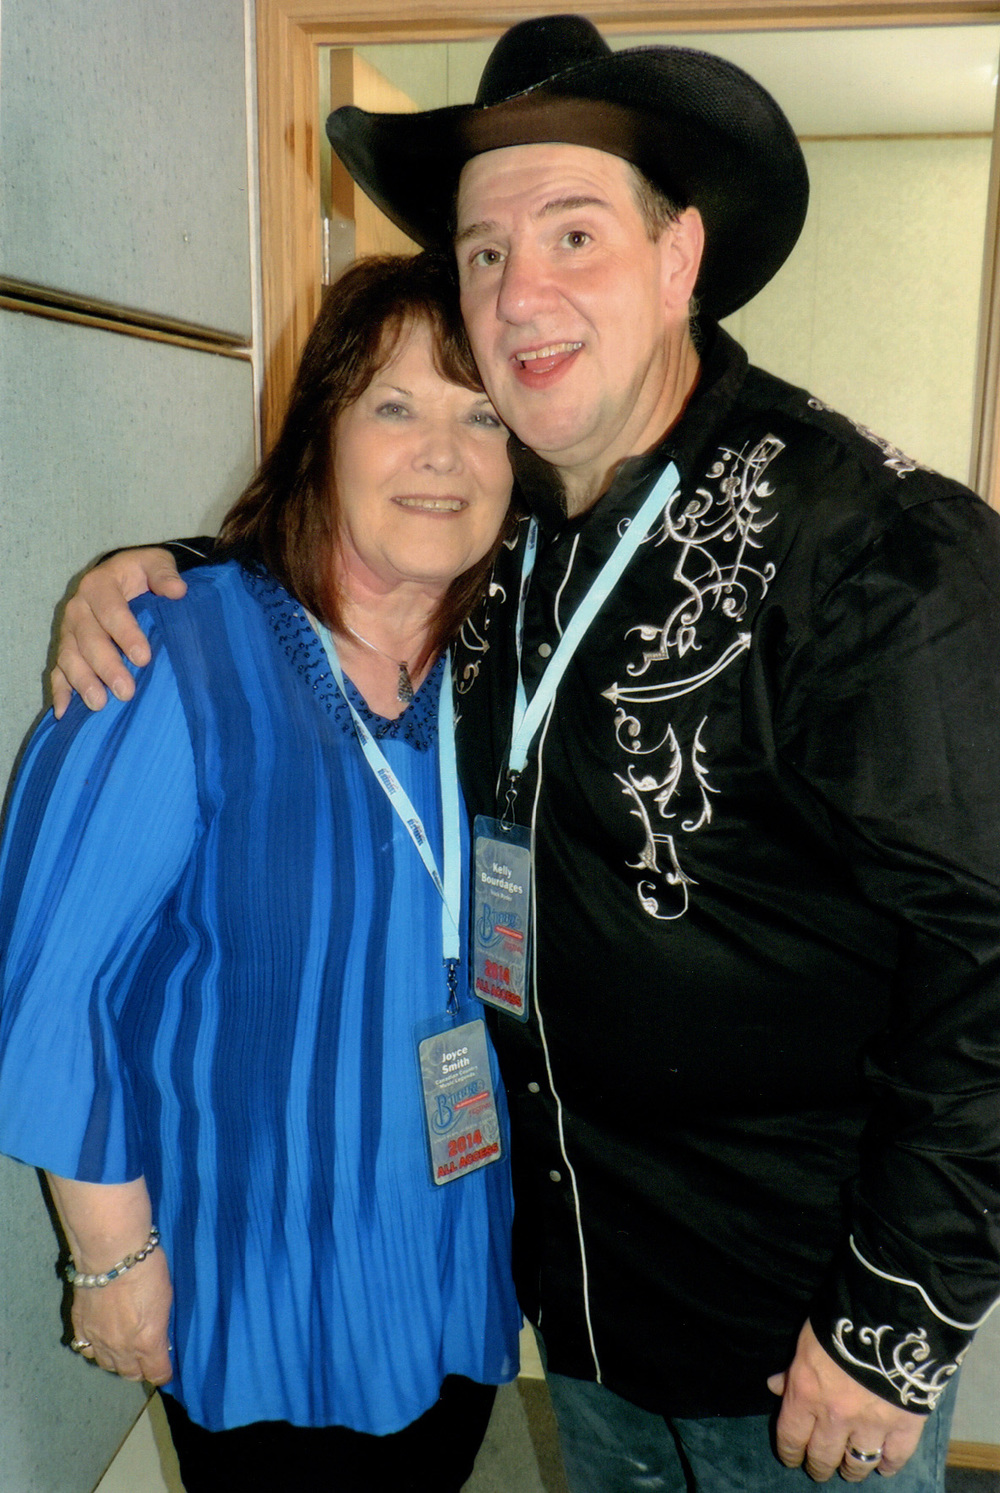 Joyce Smith of the Canadian Country Music Legends and Kelly Bourdages of Trick Ryder